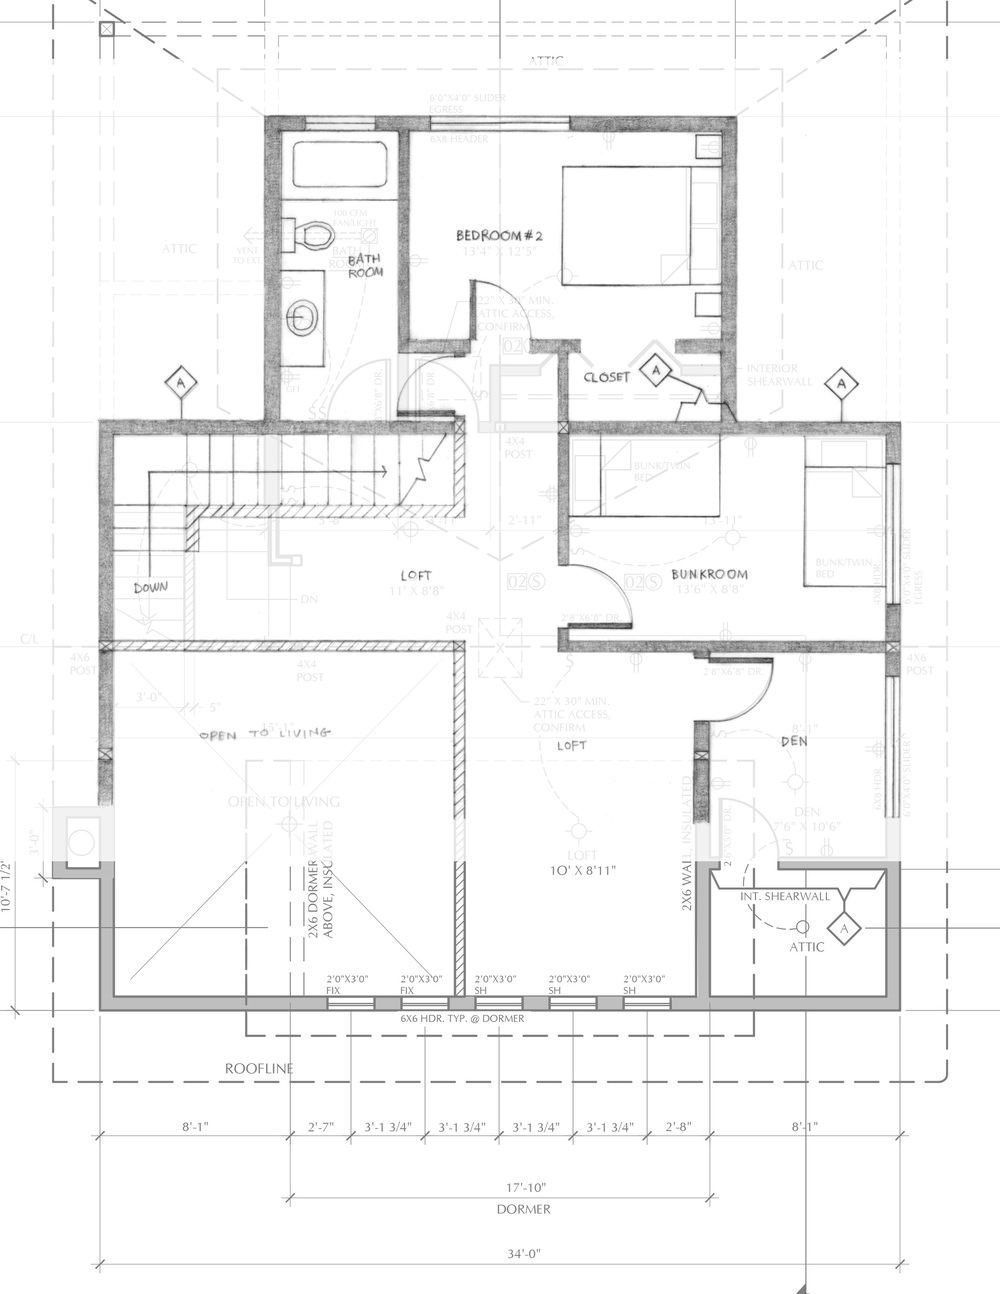 Drawing of second floor with proposed changes overlaid on top of the architects' plan.